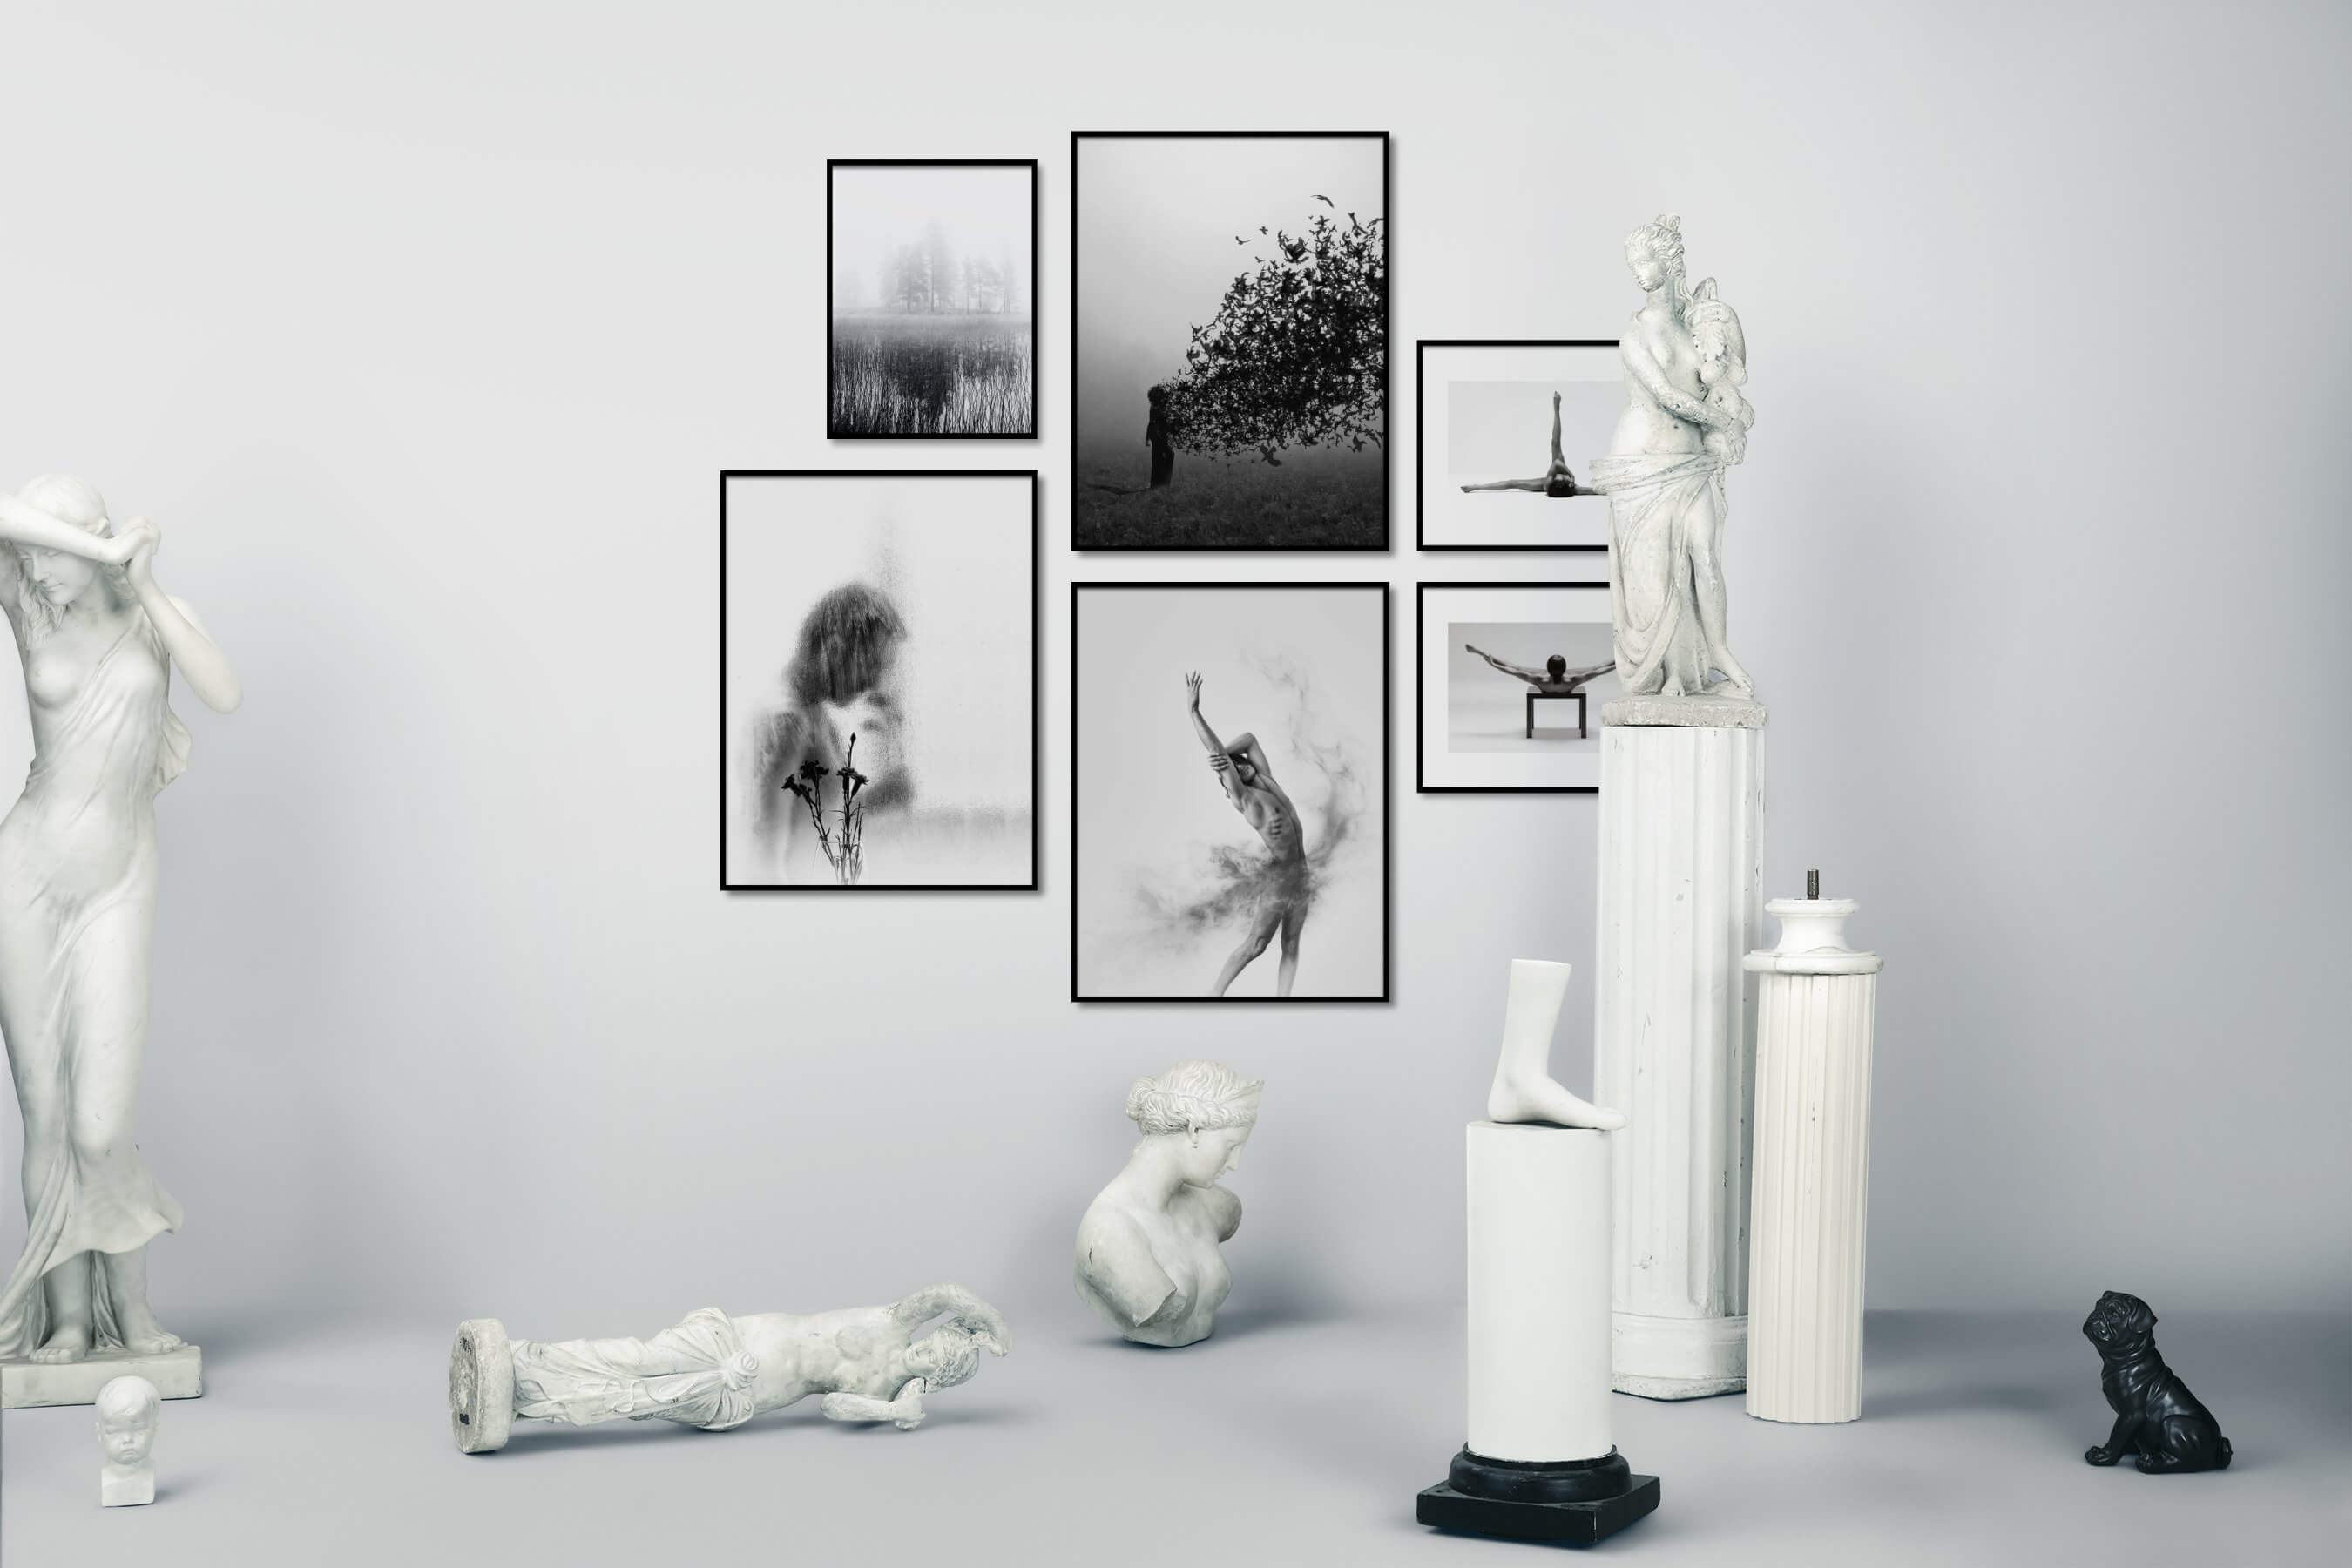 Gallery wall idea with six framed pictures arranged on a wall depicting Black & White, For the Minimalist, Nature, Artsy, Bright Tones, Flowers & Plants, Fashion & Beauty, and Mindfulness